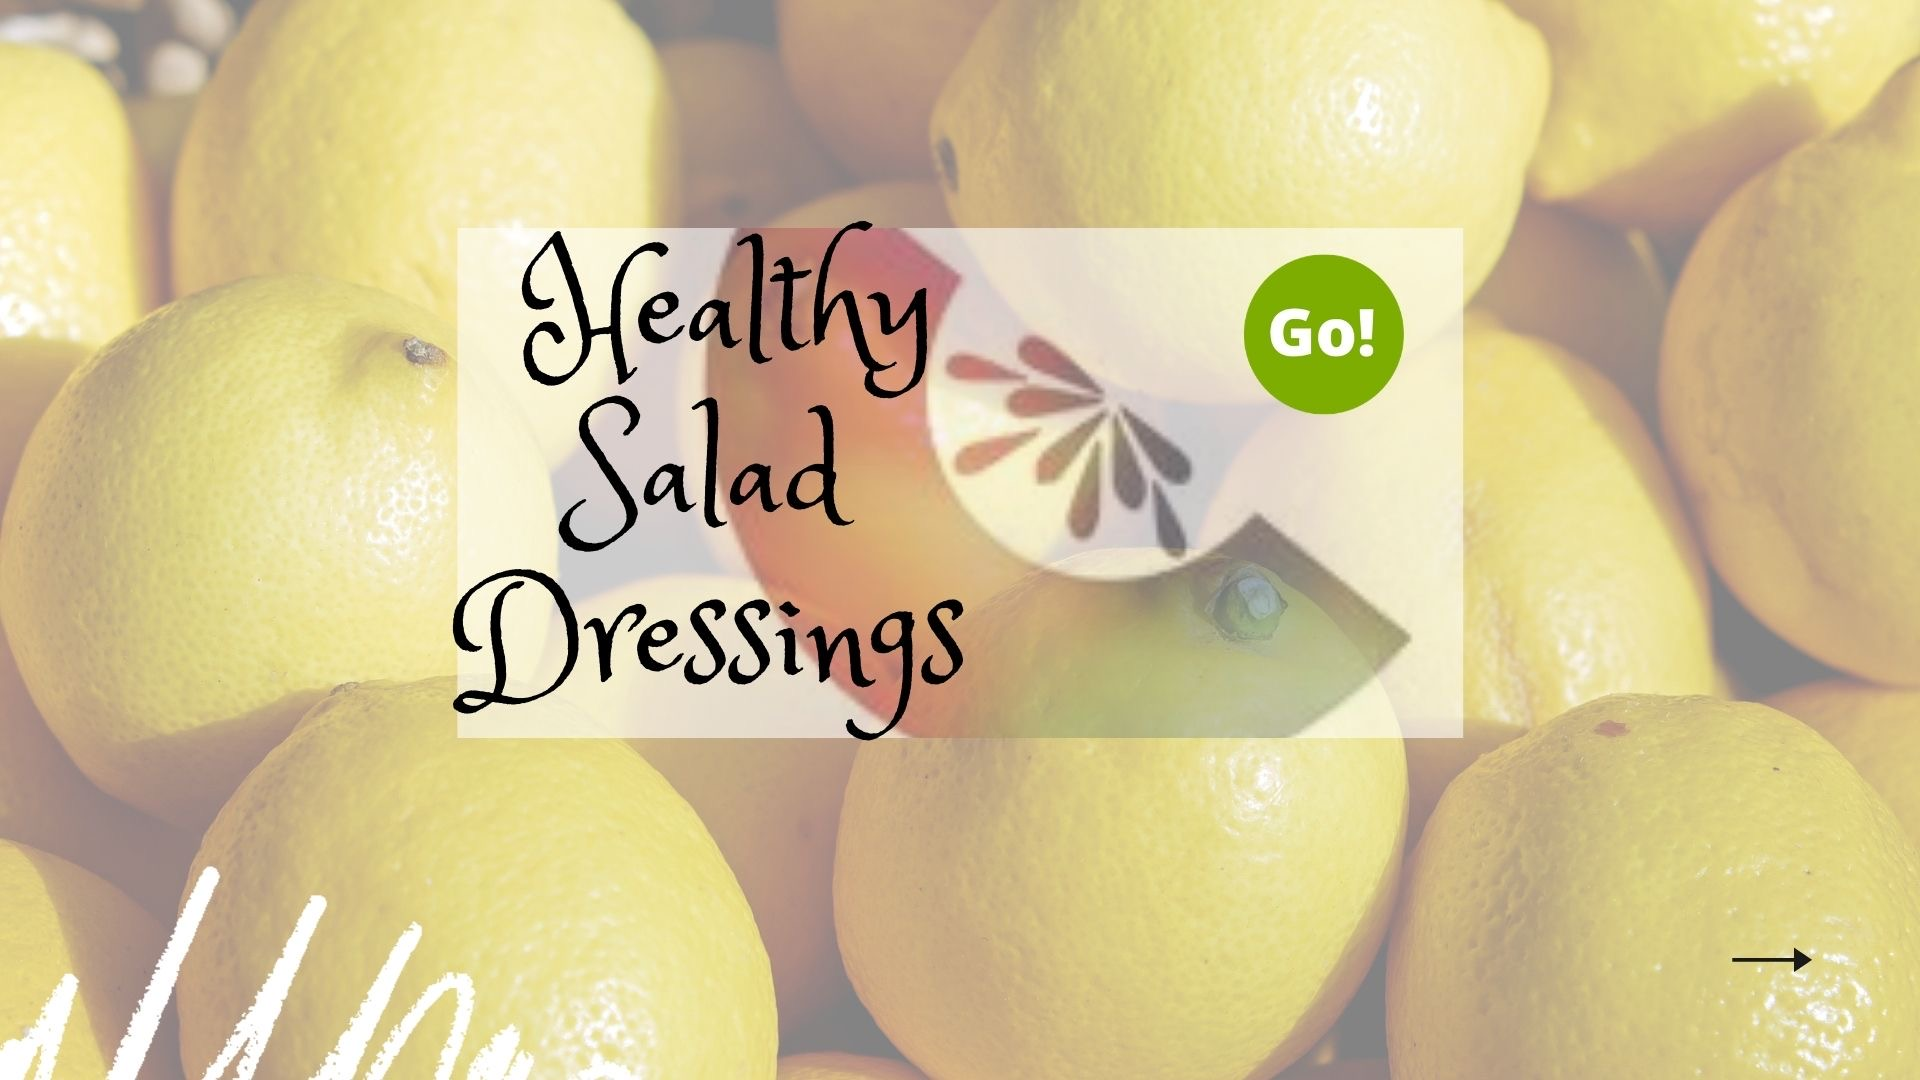 Make Your Own Salad Dressing With Haley! – +3 Prize Points!